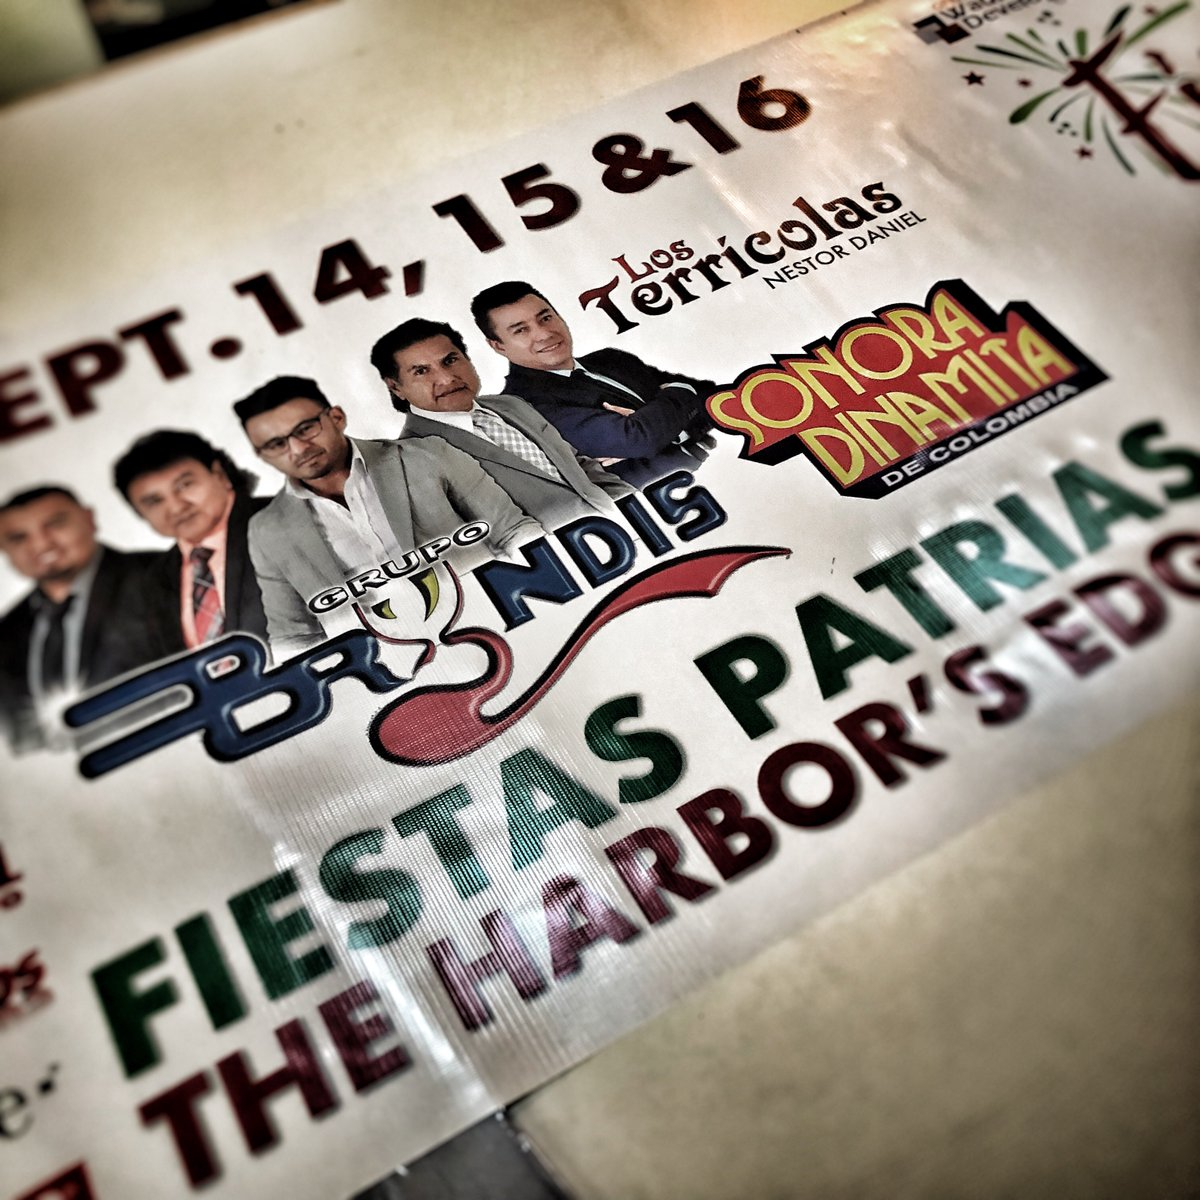 #fiestaFriday!!! Getting these banners ready for the #FiestaPatrias Sept 14-16 at the #WaukeganHarborsEdge. Stop by and check out this line up! Sponsored by #WhiteSox #Univision #queBuena #reflejos #wintrust #tmobile #northshoregas #cfsc #weprintthattoo #banners #signs #gwdcpic.twitter.com/6dveuqp1F7